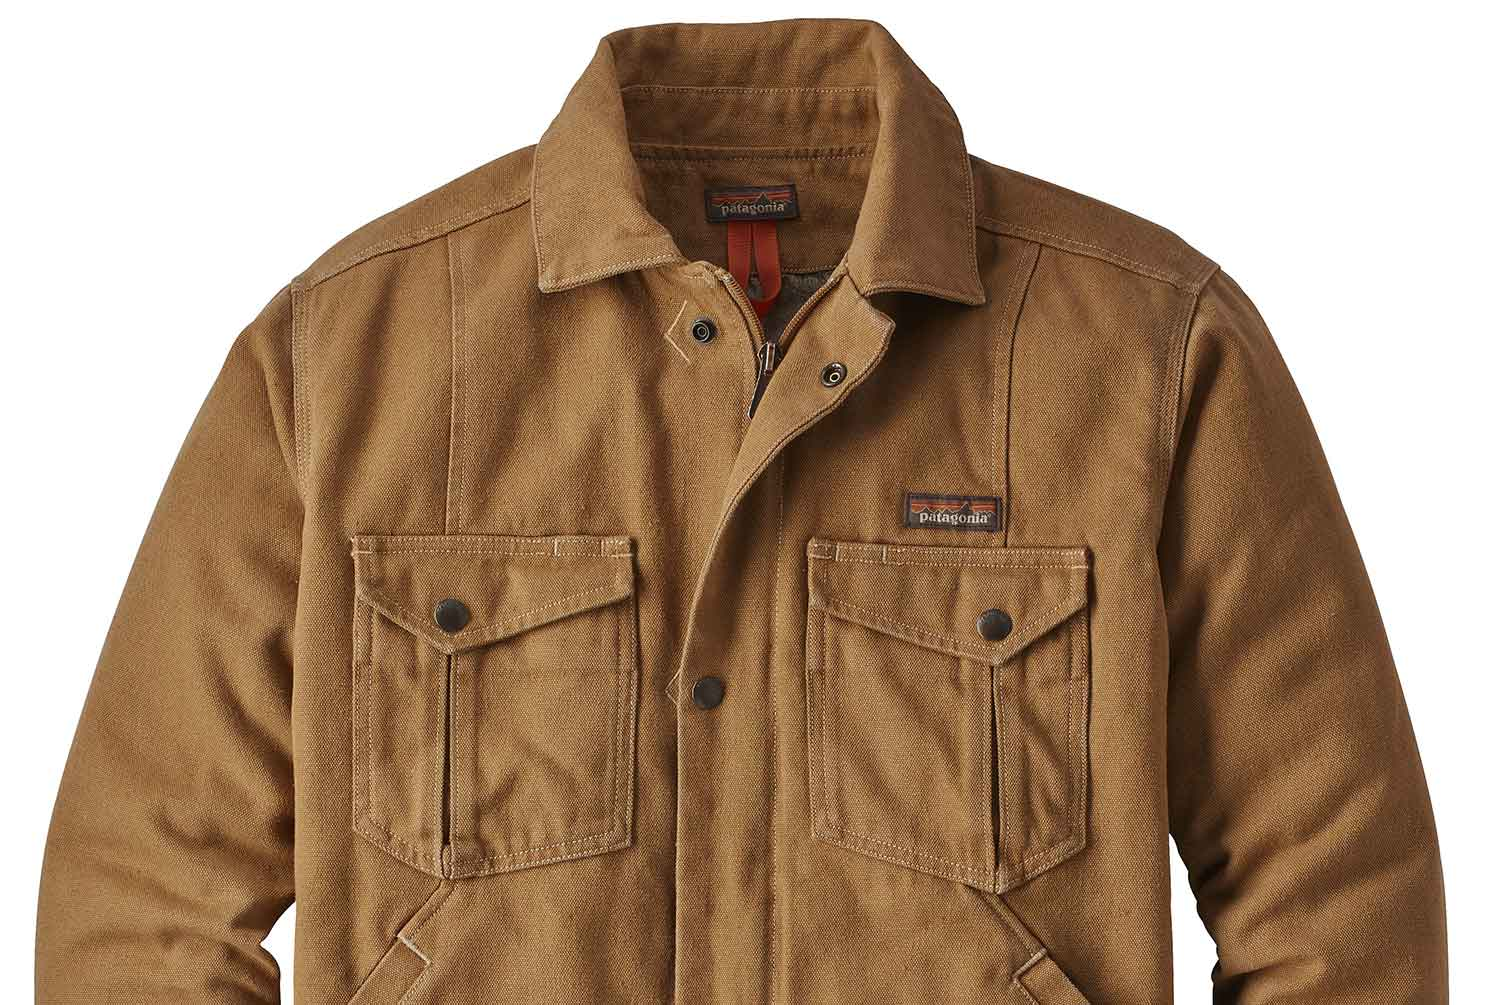 d3463bf3c3e9d Patagonia Launches Workwear In 'Iron Forged' Hemp Canvas | GearJunkie